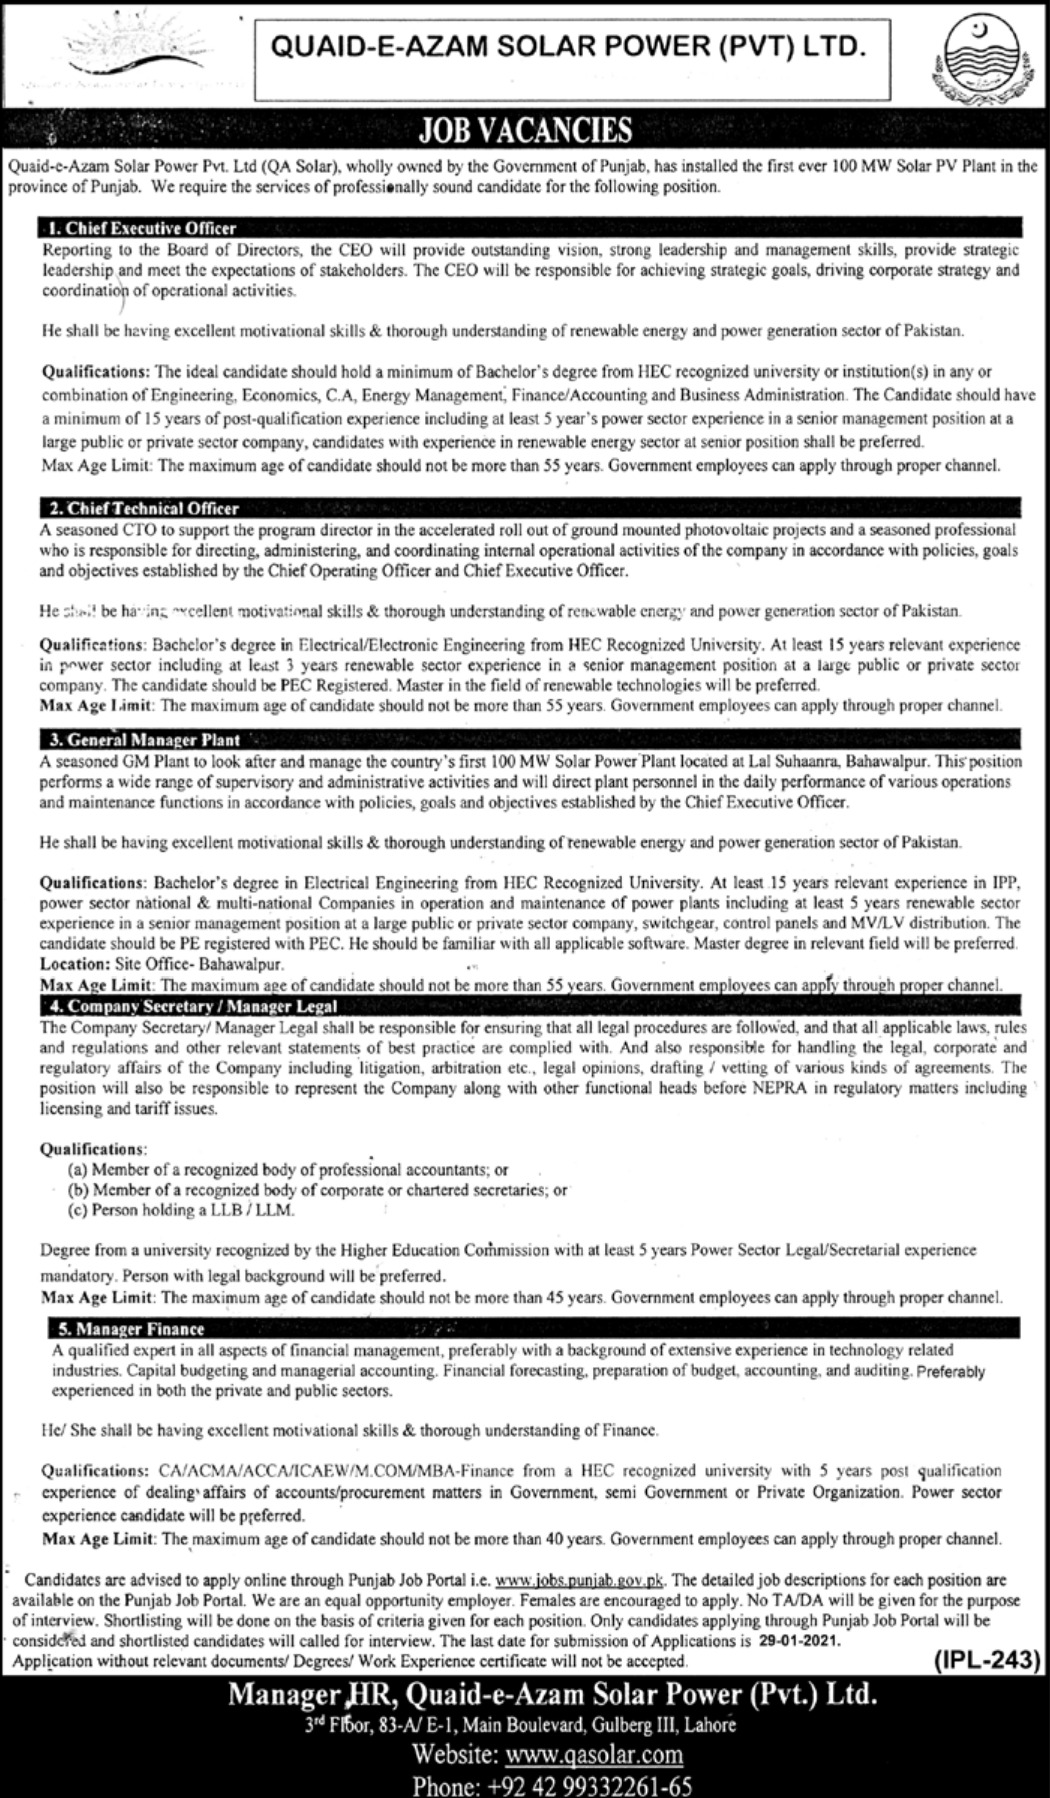 Quaid e Azam Solar Power Pvt Ltd Jobs January 2021